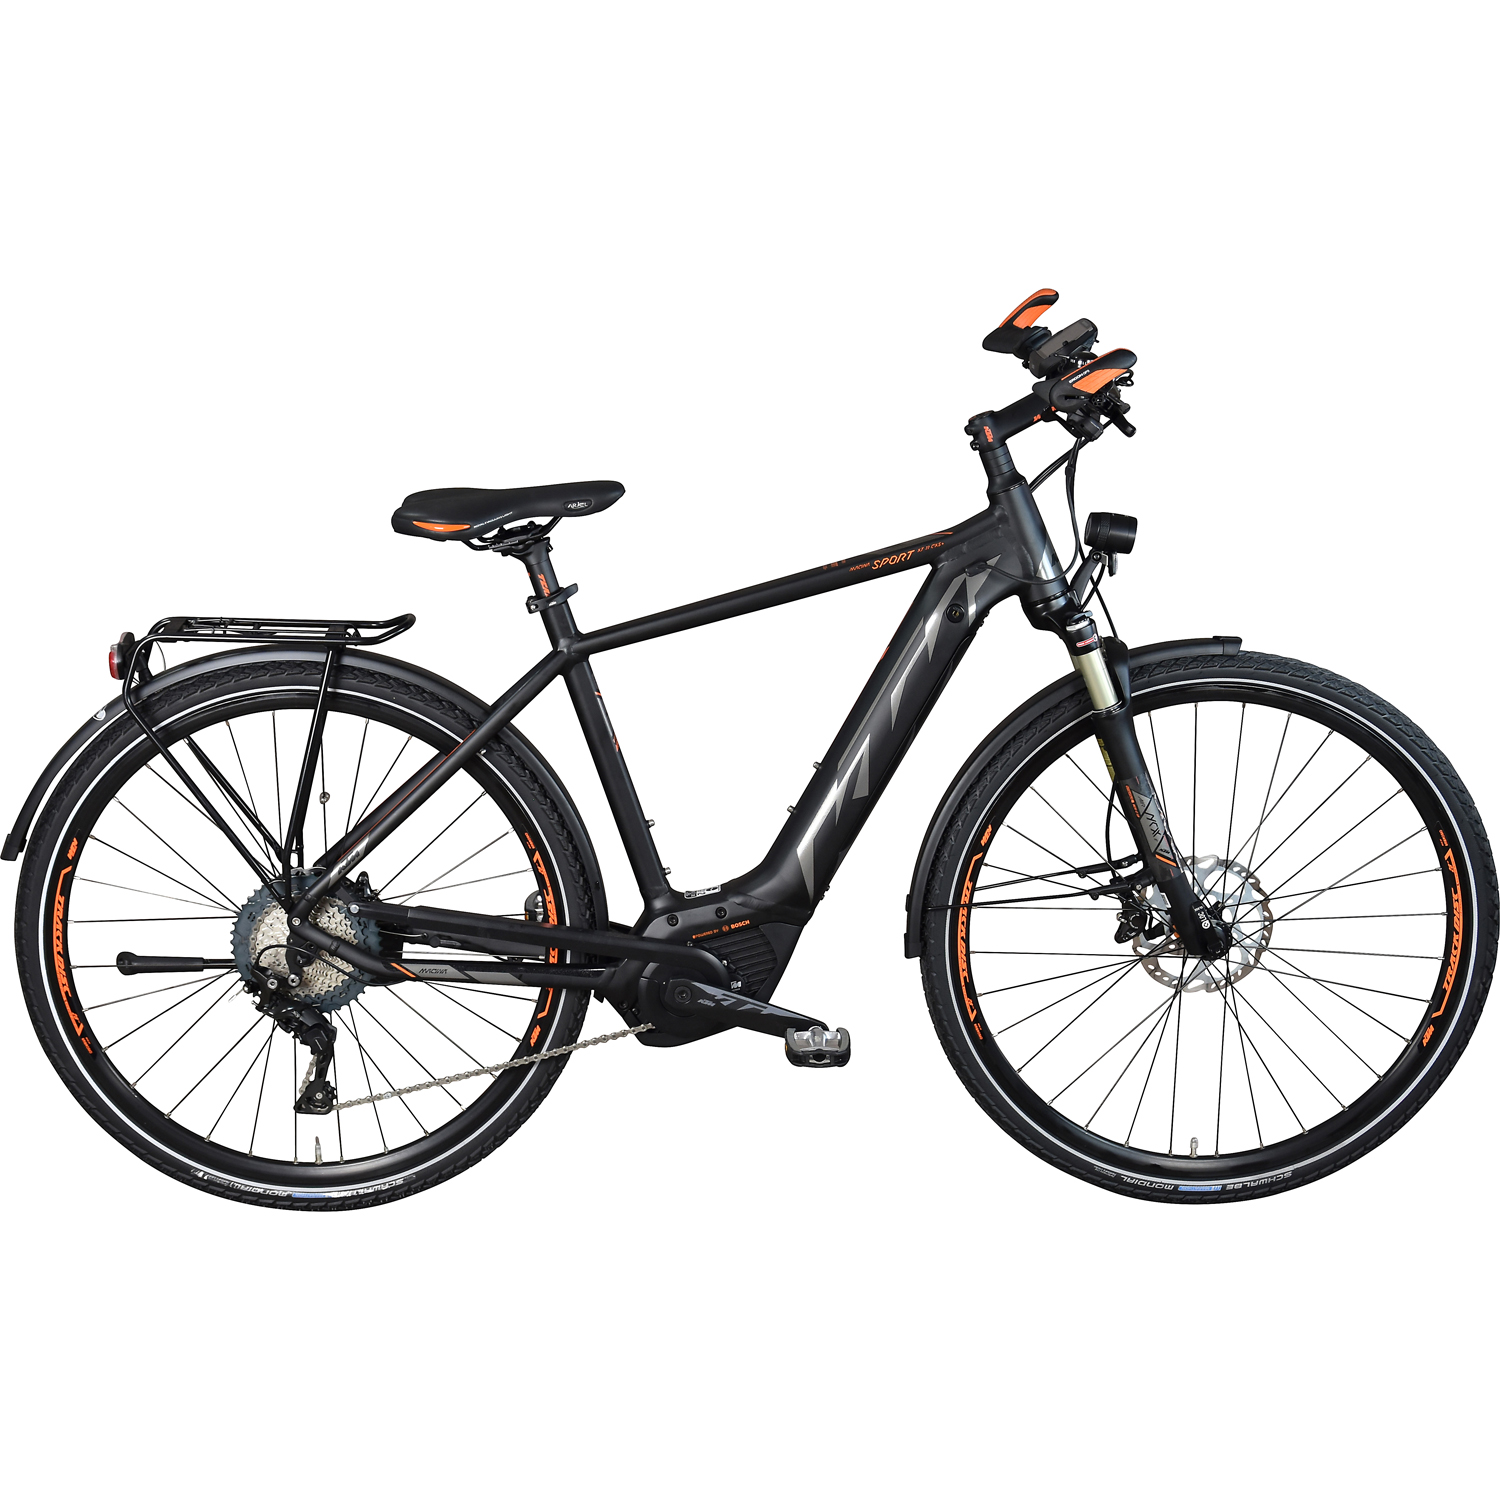 ktm macina sport xt11 cx5 elektrobike trekkingrad. Black Bedroom Furniture Sets. Home Design Ideas